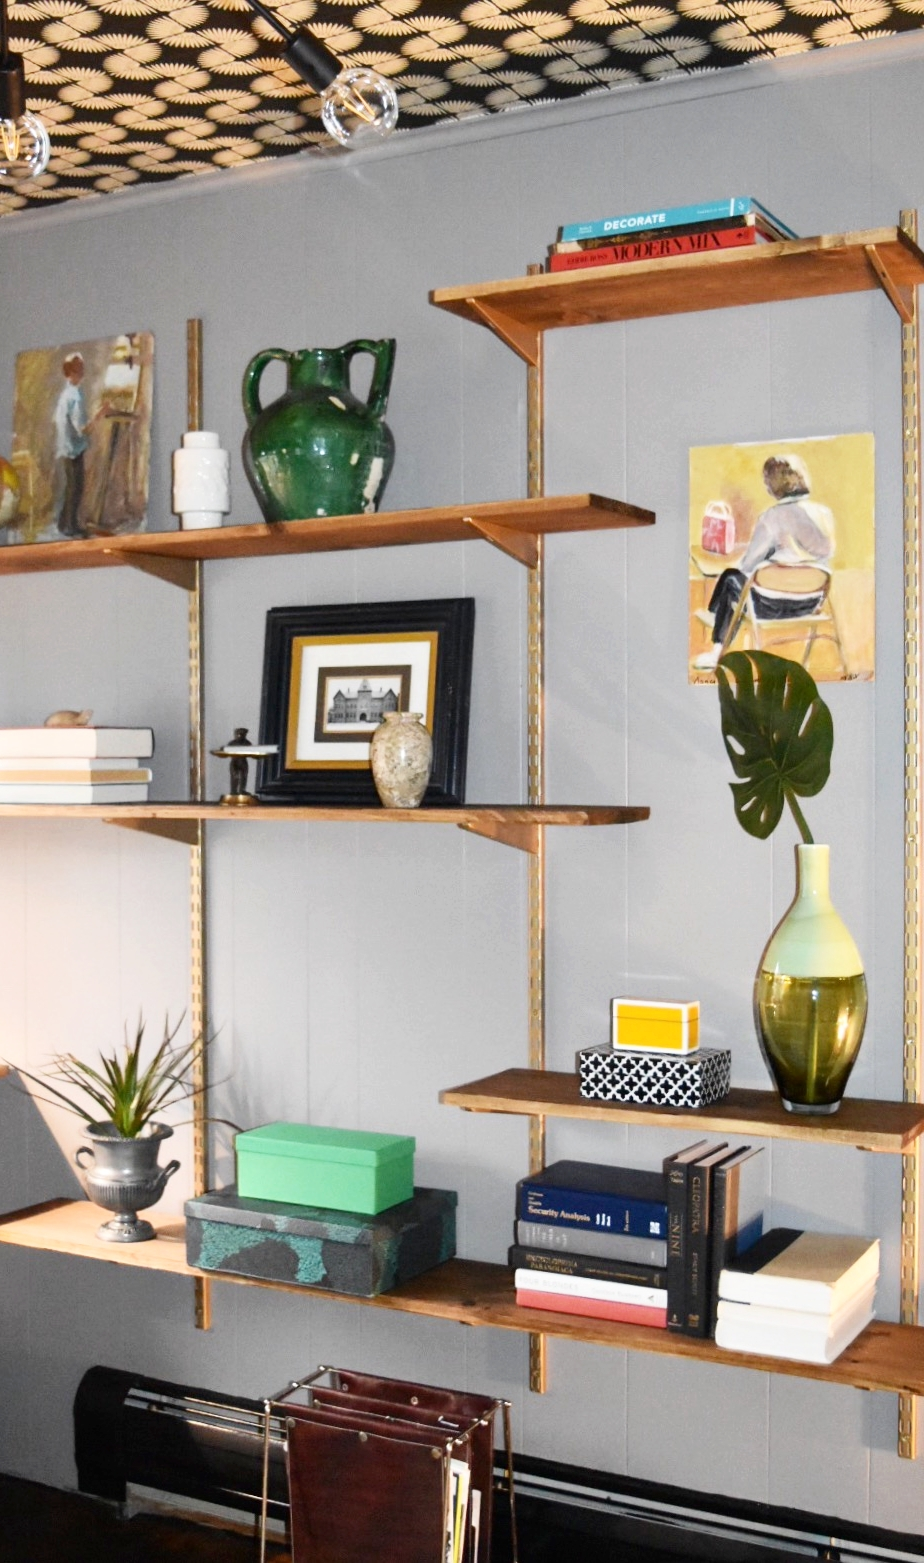 Our DIY version of a mid mod shelving unit